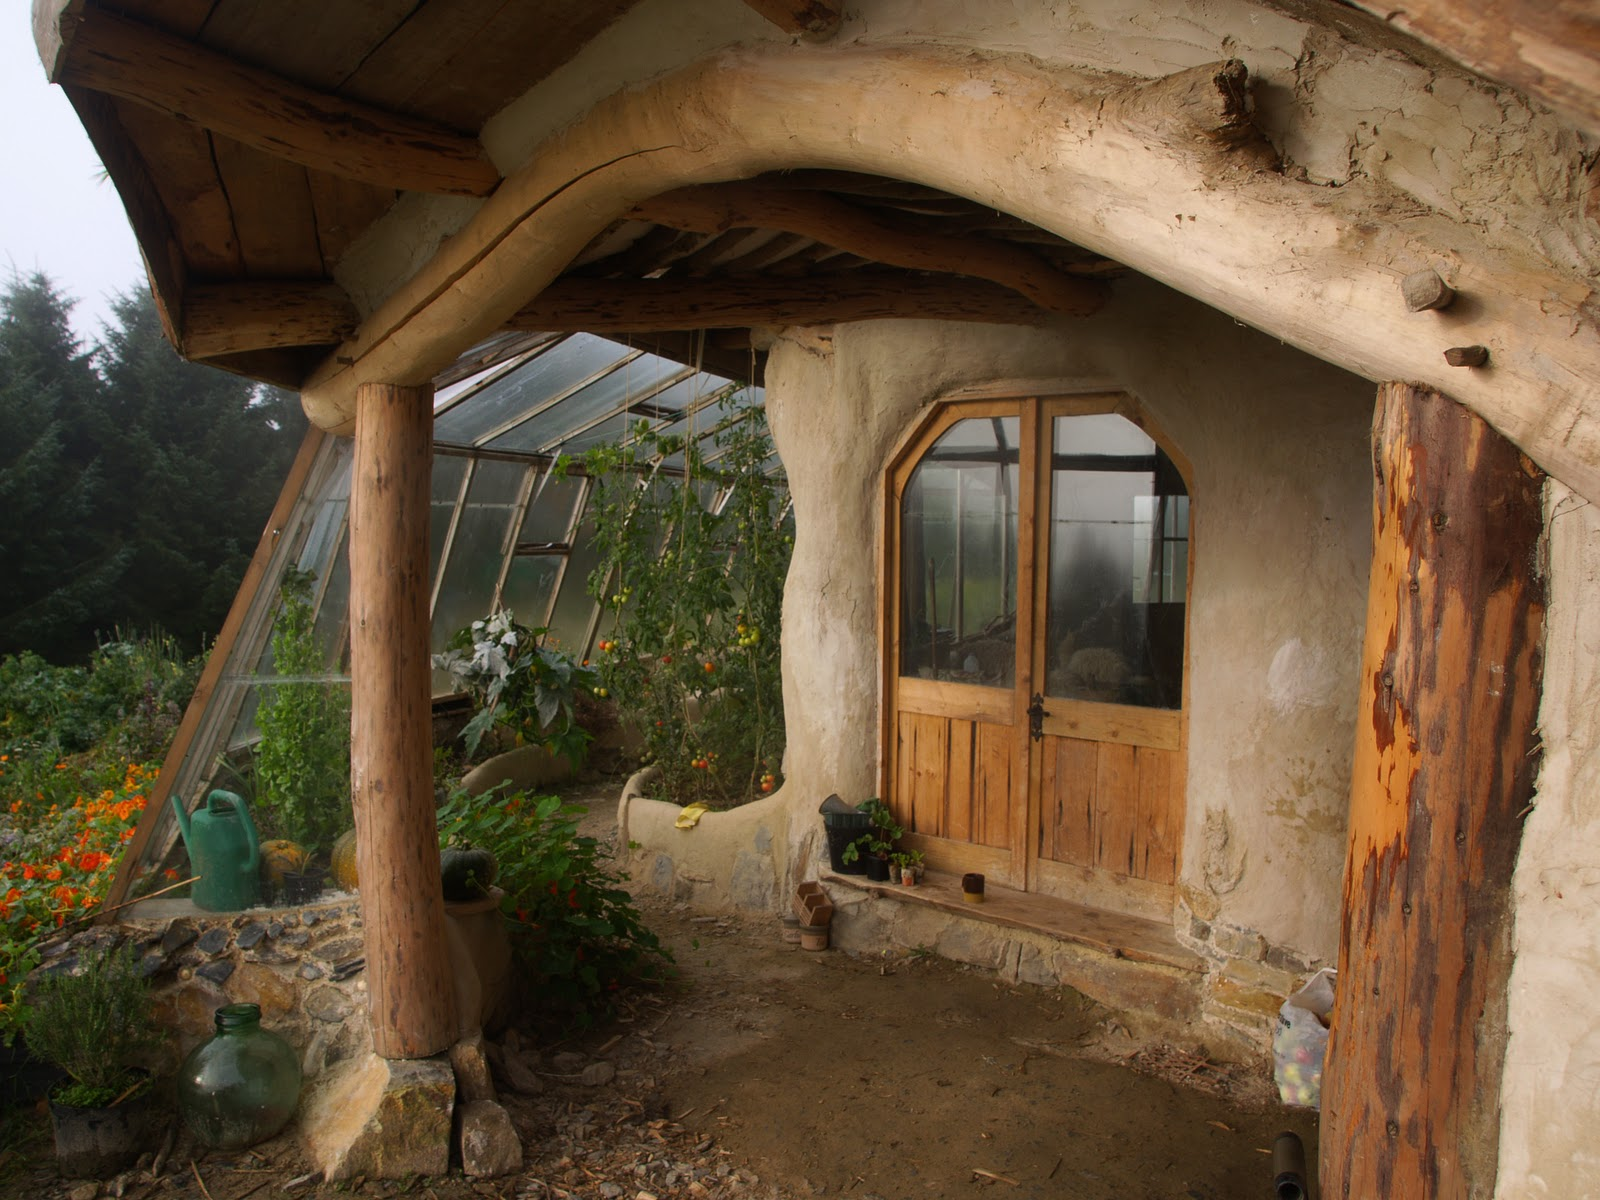 Eclectitude: A Hobbit House in Wales